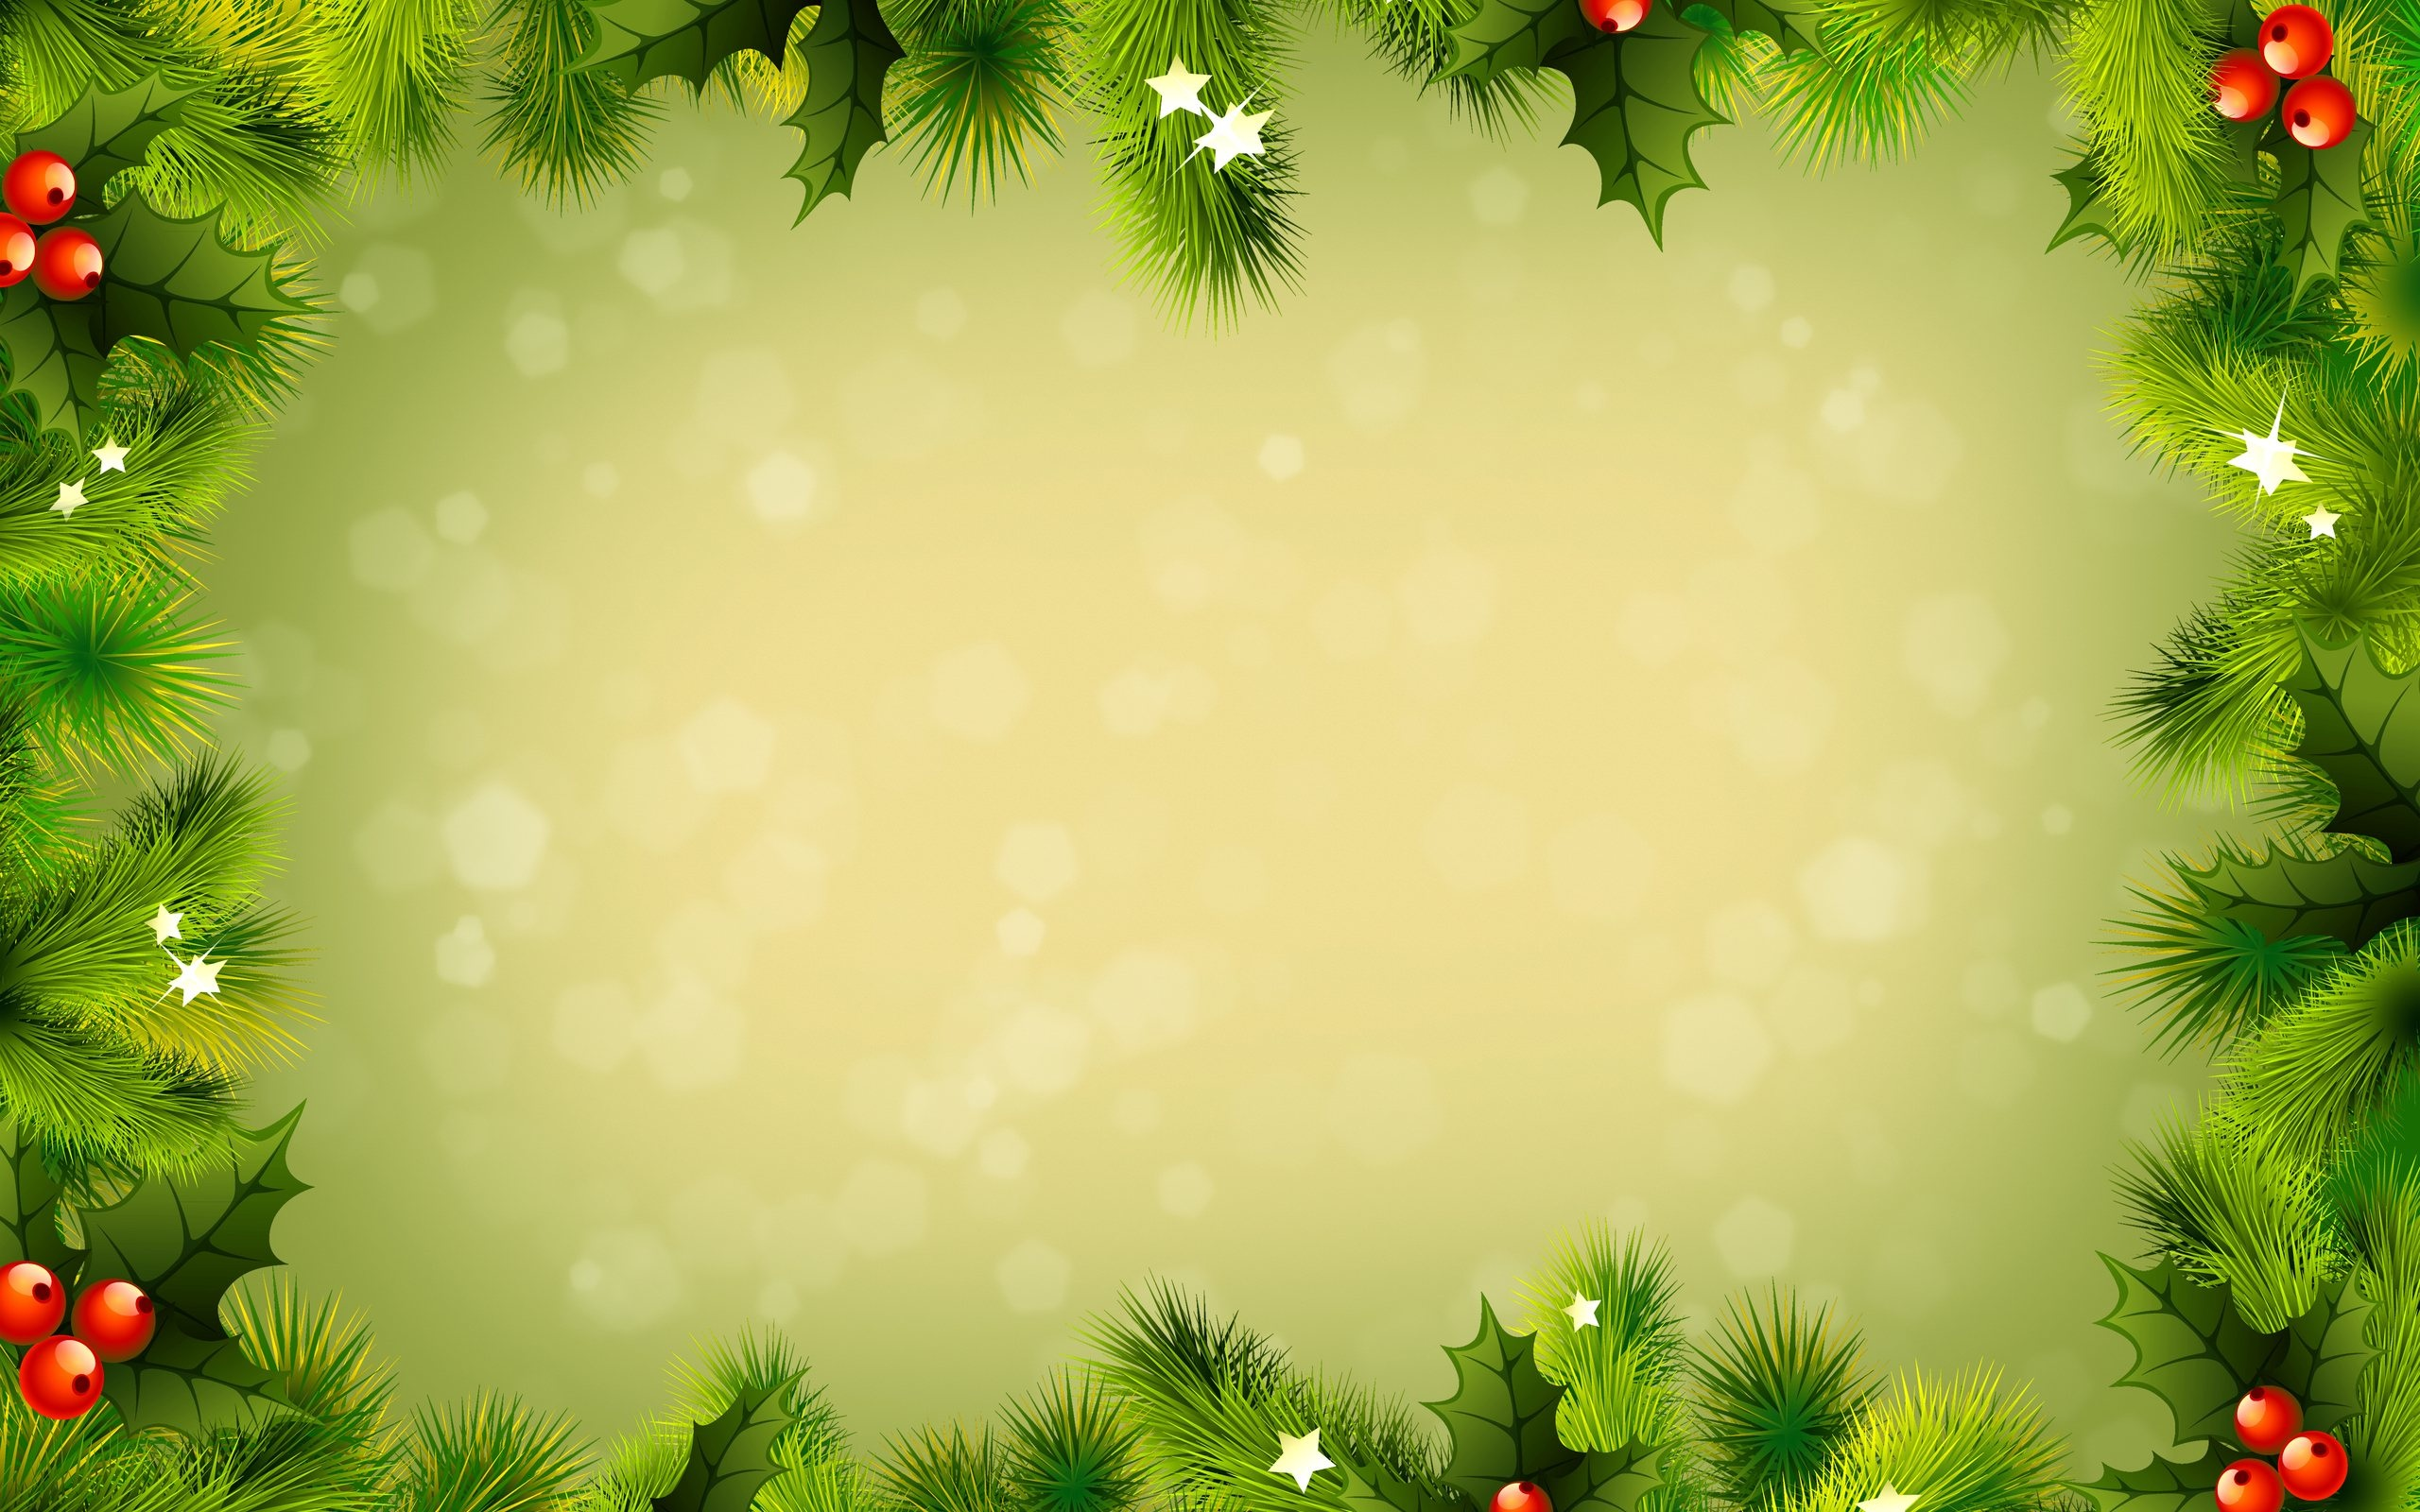 Christmas Backgrounds Group (74+)